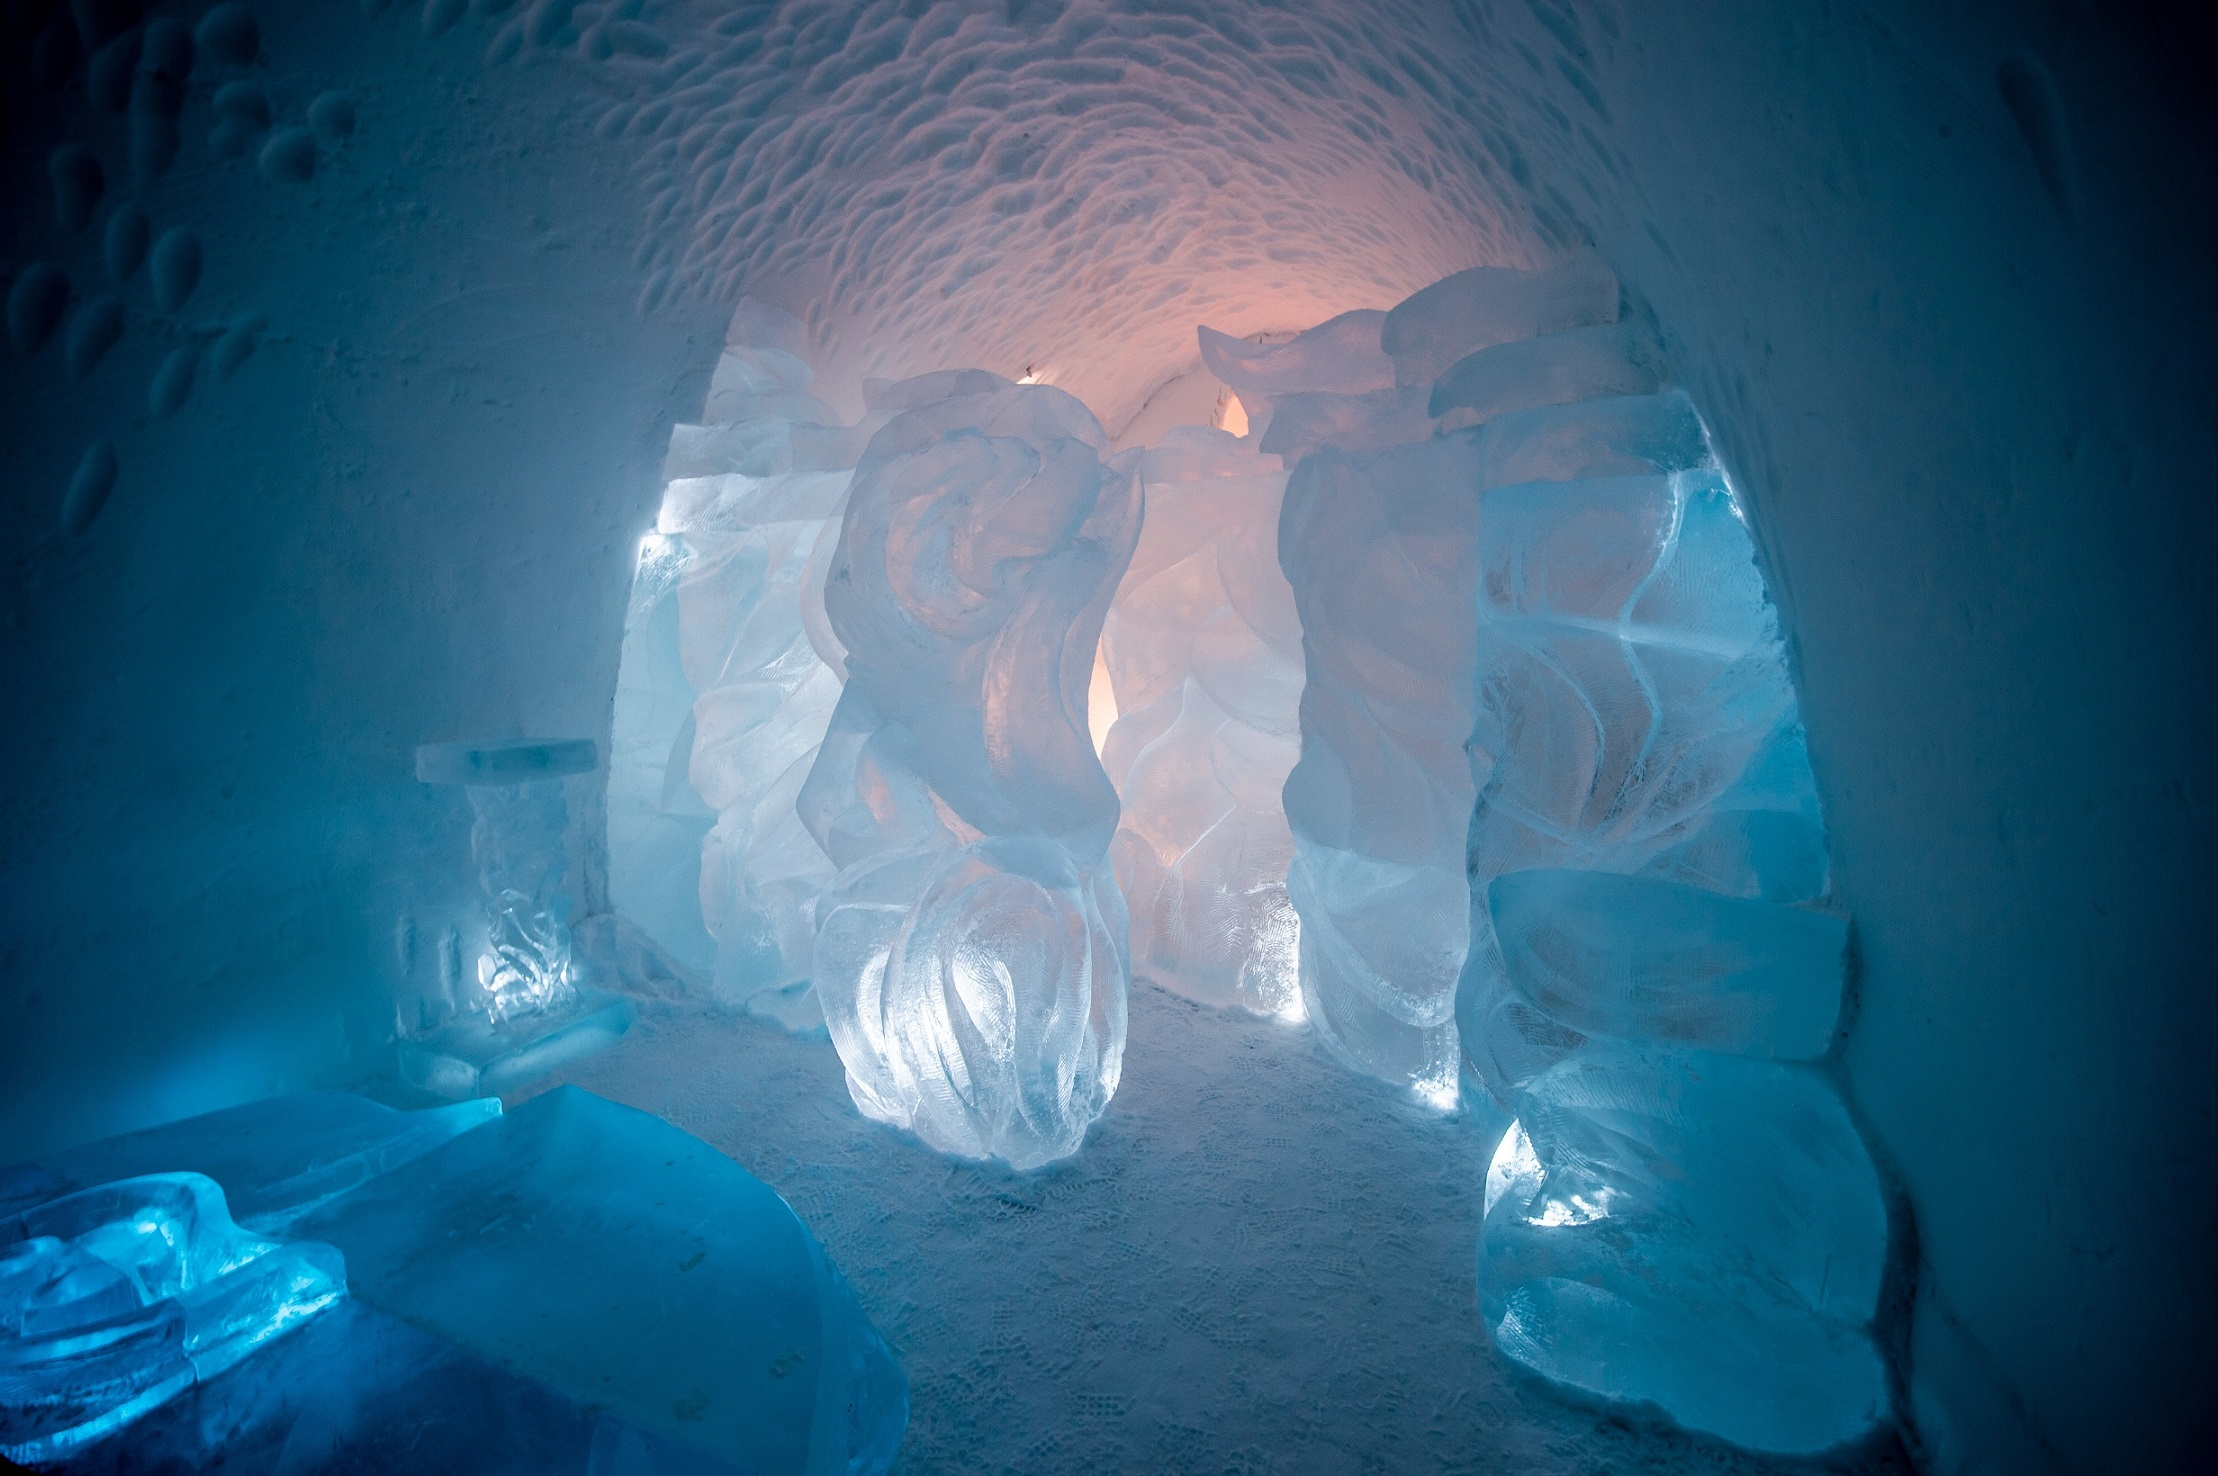 Spring Dream Credit Lei Zhao Yong Zhao Asaf Kliger Icehotel